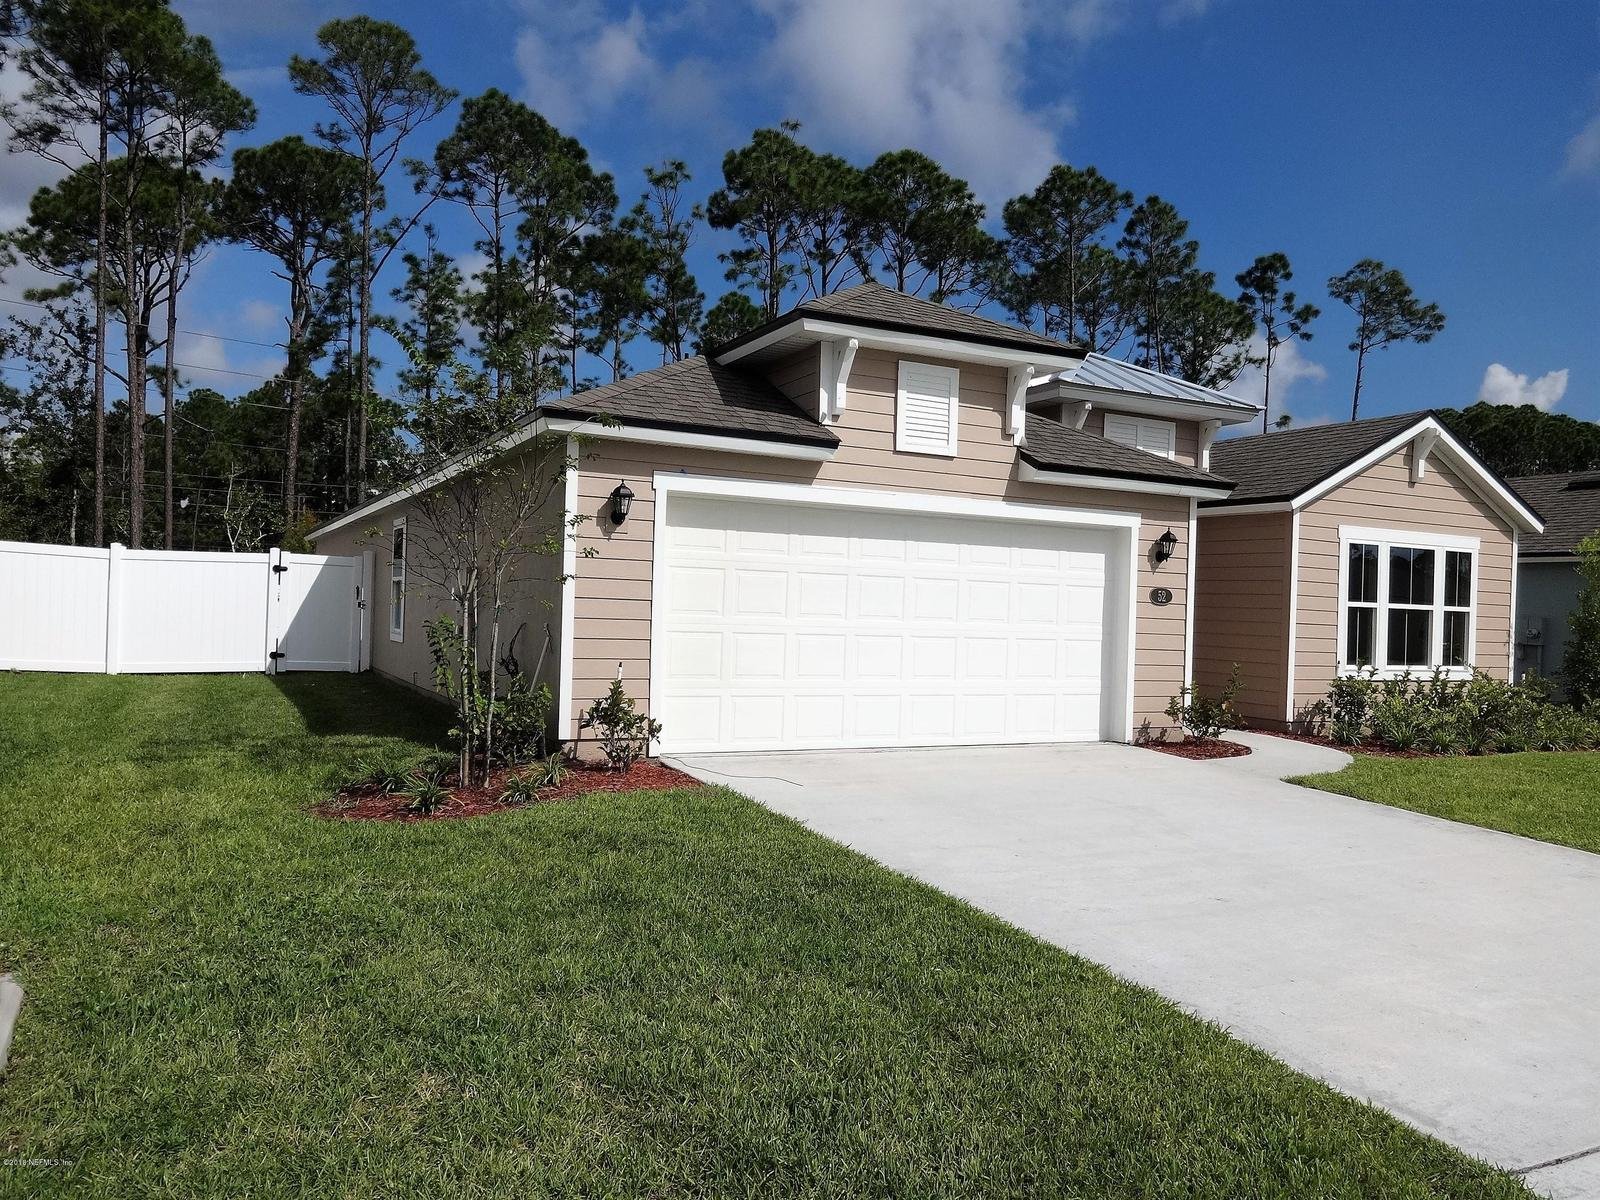 52 Coastal Hammock Way St Augustine Fl Mls 923022 Better Homes And Gardens Real Estate